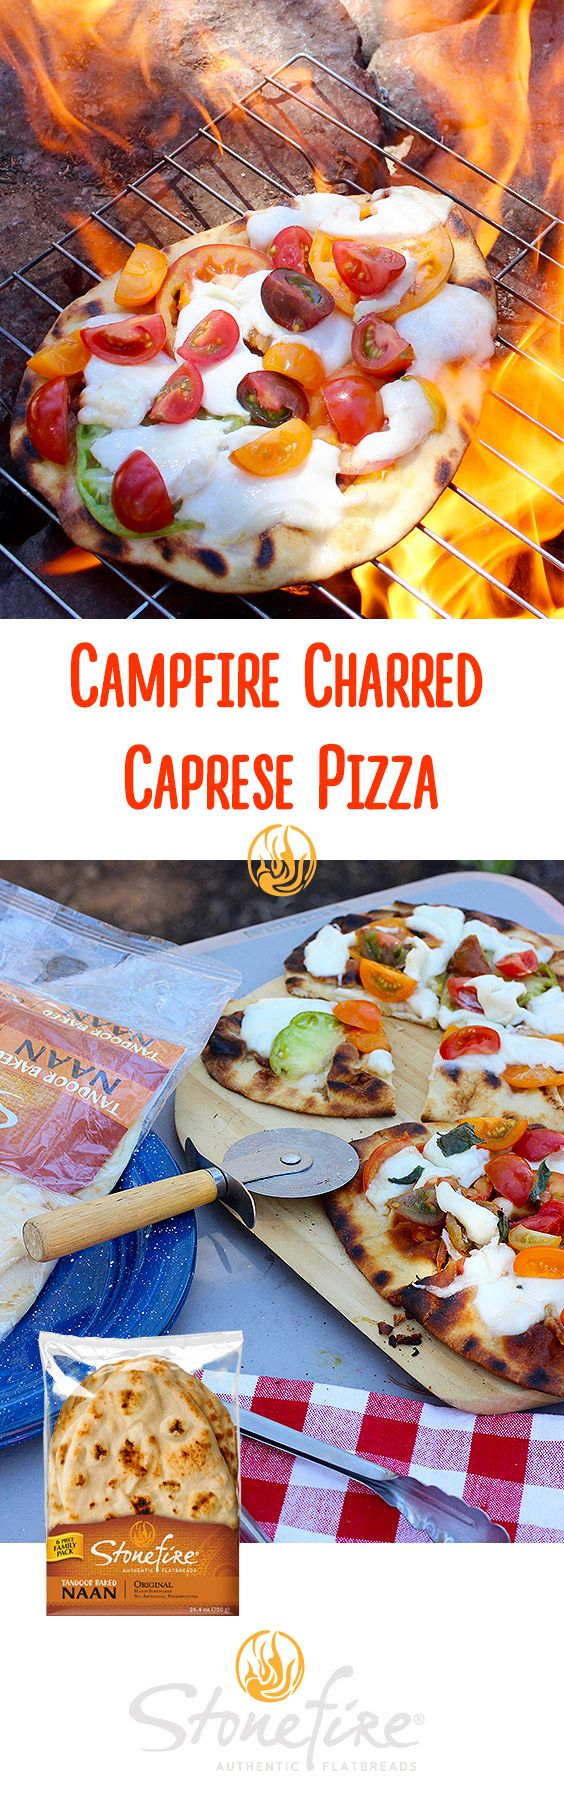 COMBINE oil and balsamic vinegar in a small bowl, brush on both sides of naan,  GRILL the naan on a camping grill bubbly side down until grill marks appear, about 2 min REMOVE and build the naan pizza by brushing the remaining oil and balsamic mixture and then layering on your toppings—sliced heirloom tomatoes, buffalo mozzarella. Finish with a sprinkle of salt and pepper COOK the pizza for an additional 3-5 min until the bottom is golden brown and cheese is melted.   REMOVE from grill…